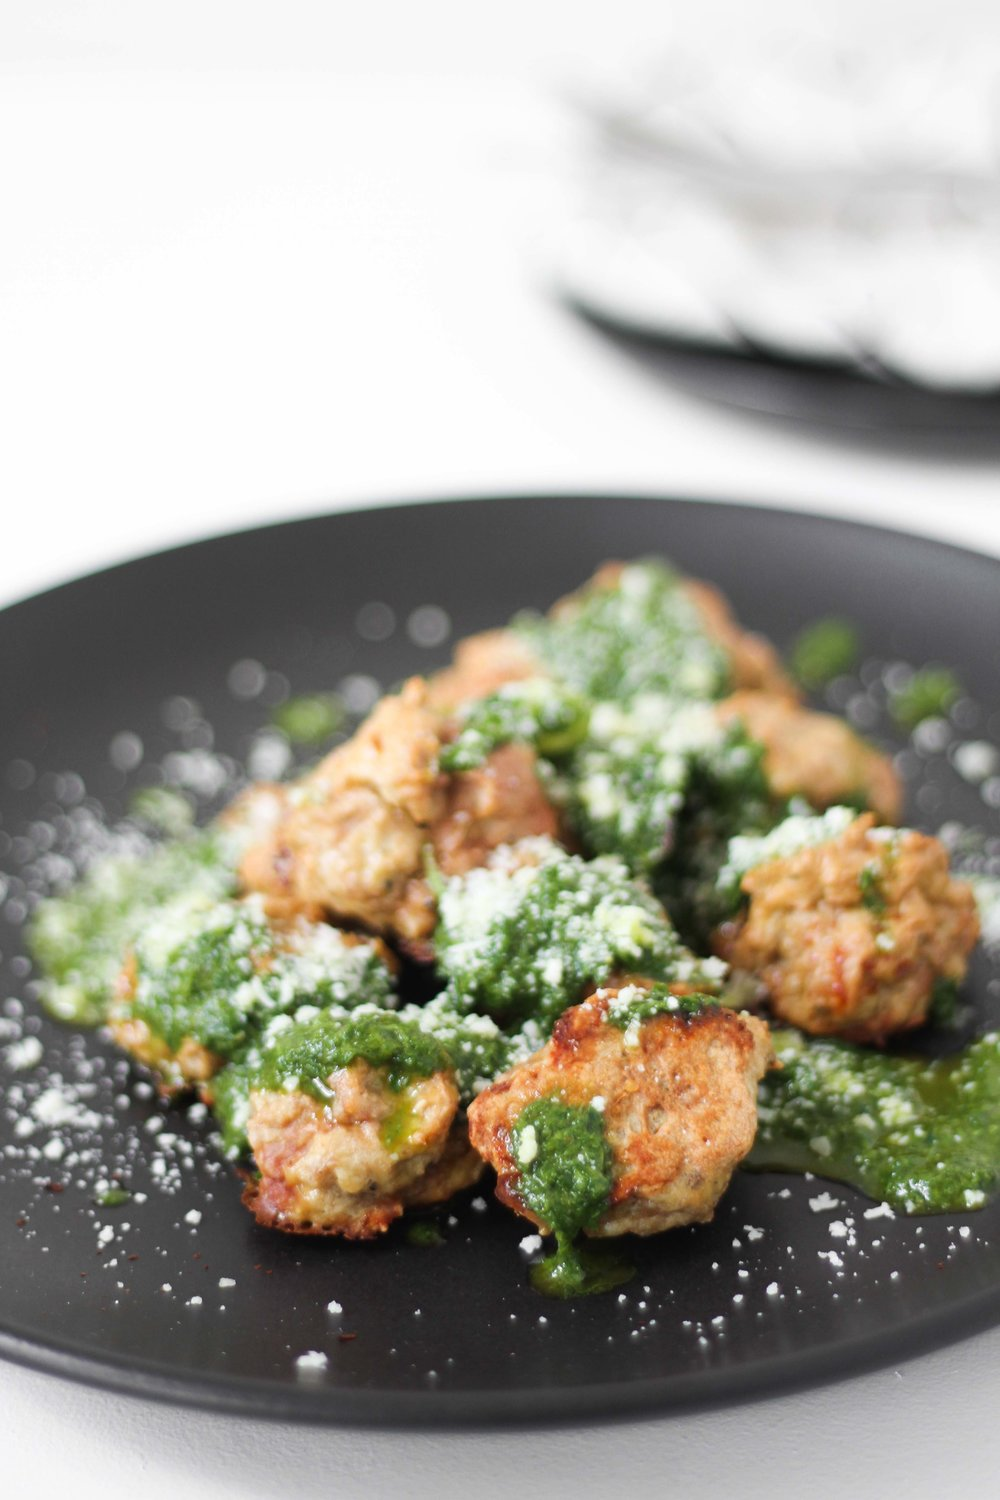 Turkey meatballs with chimichurri